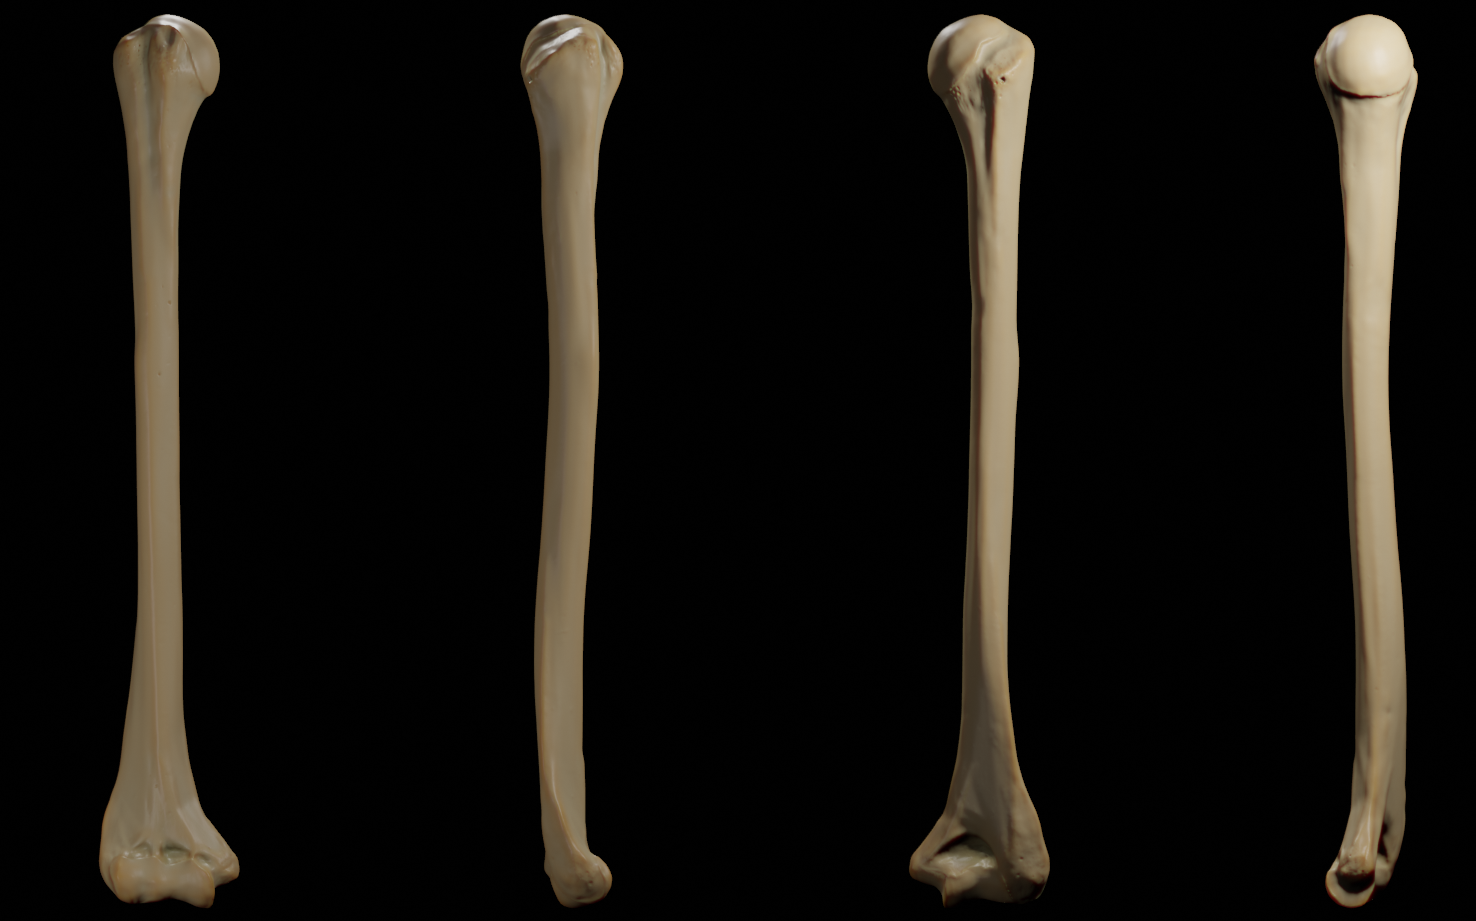 Humerus - Anterior, Posterior, Medial and lateral views